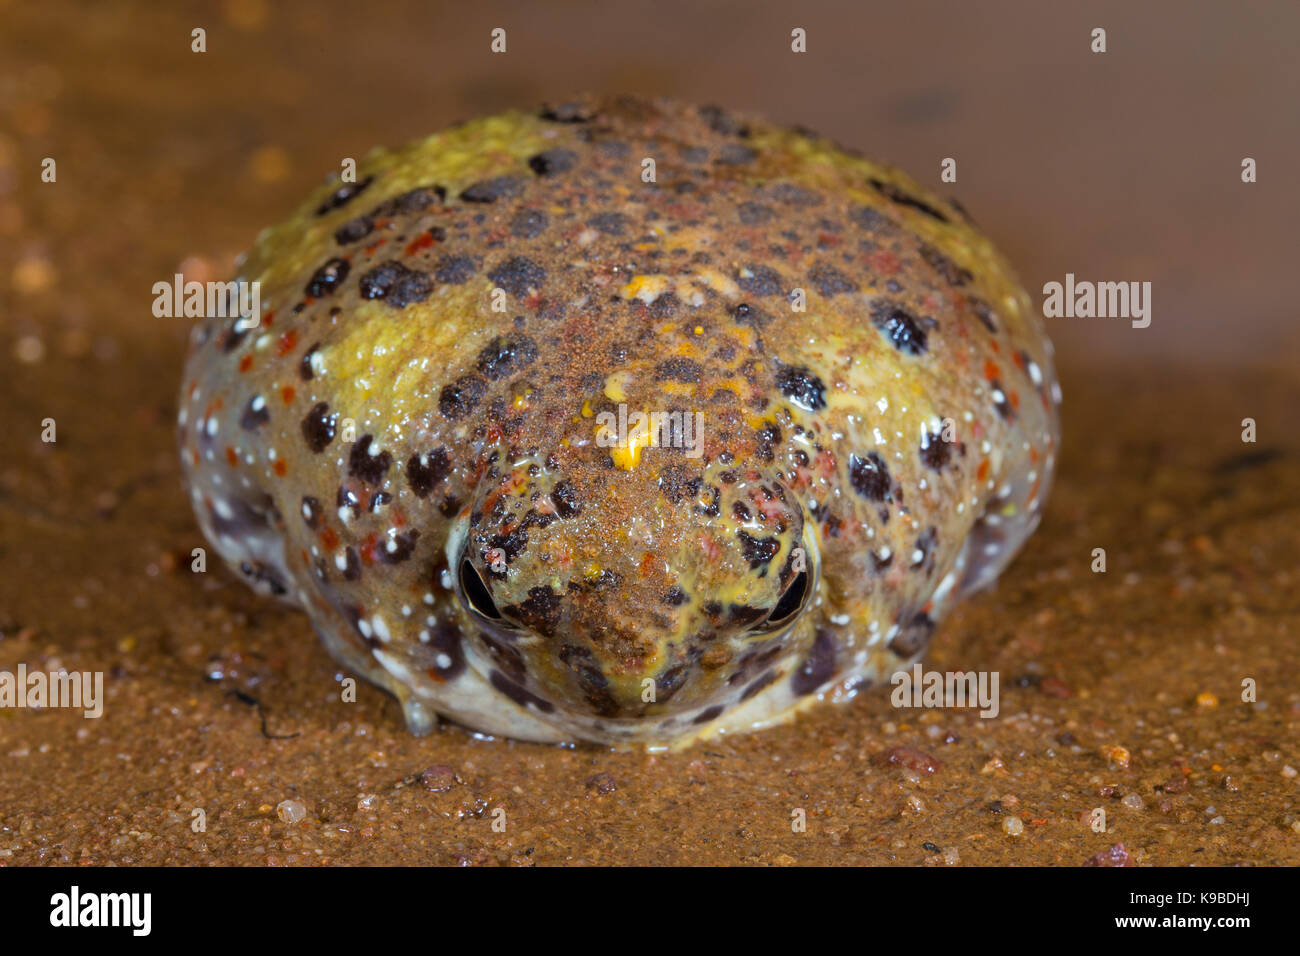 Crucifix Toad, also know as Holy Cross Frog (Notaden bennettii), Cunnamulla, Queensland, Australia - Stock Image